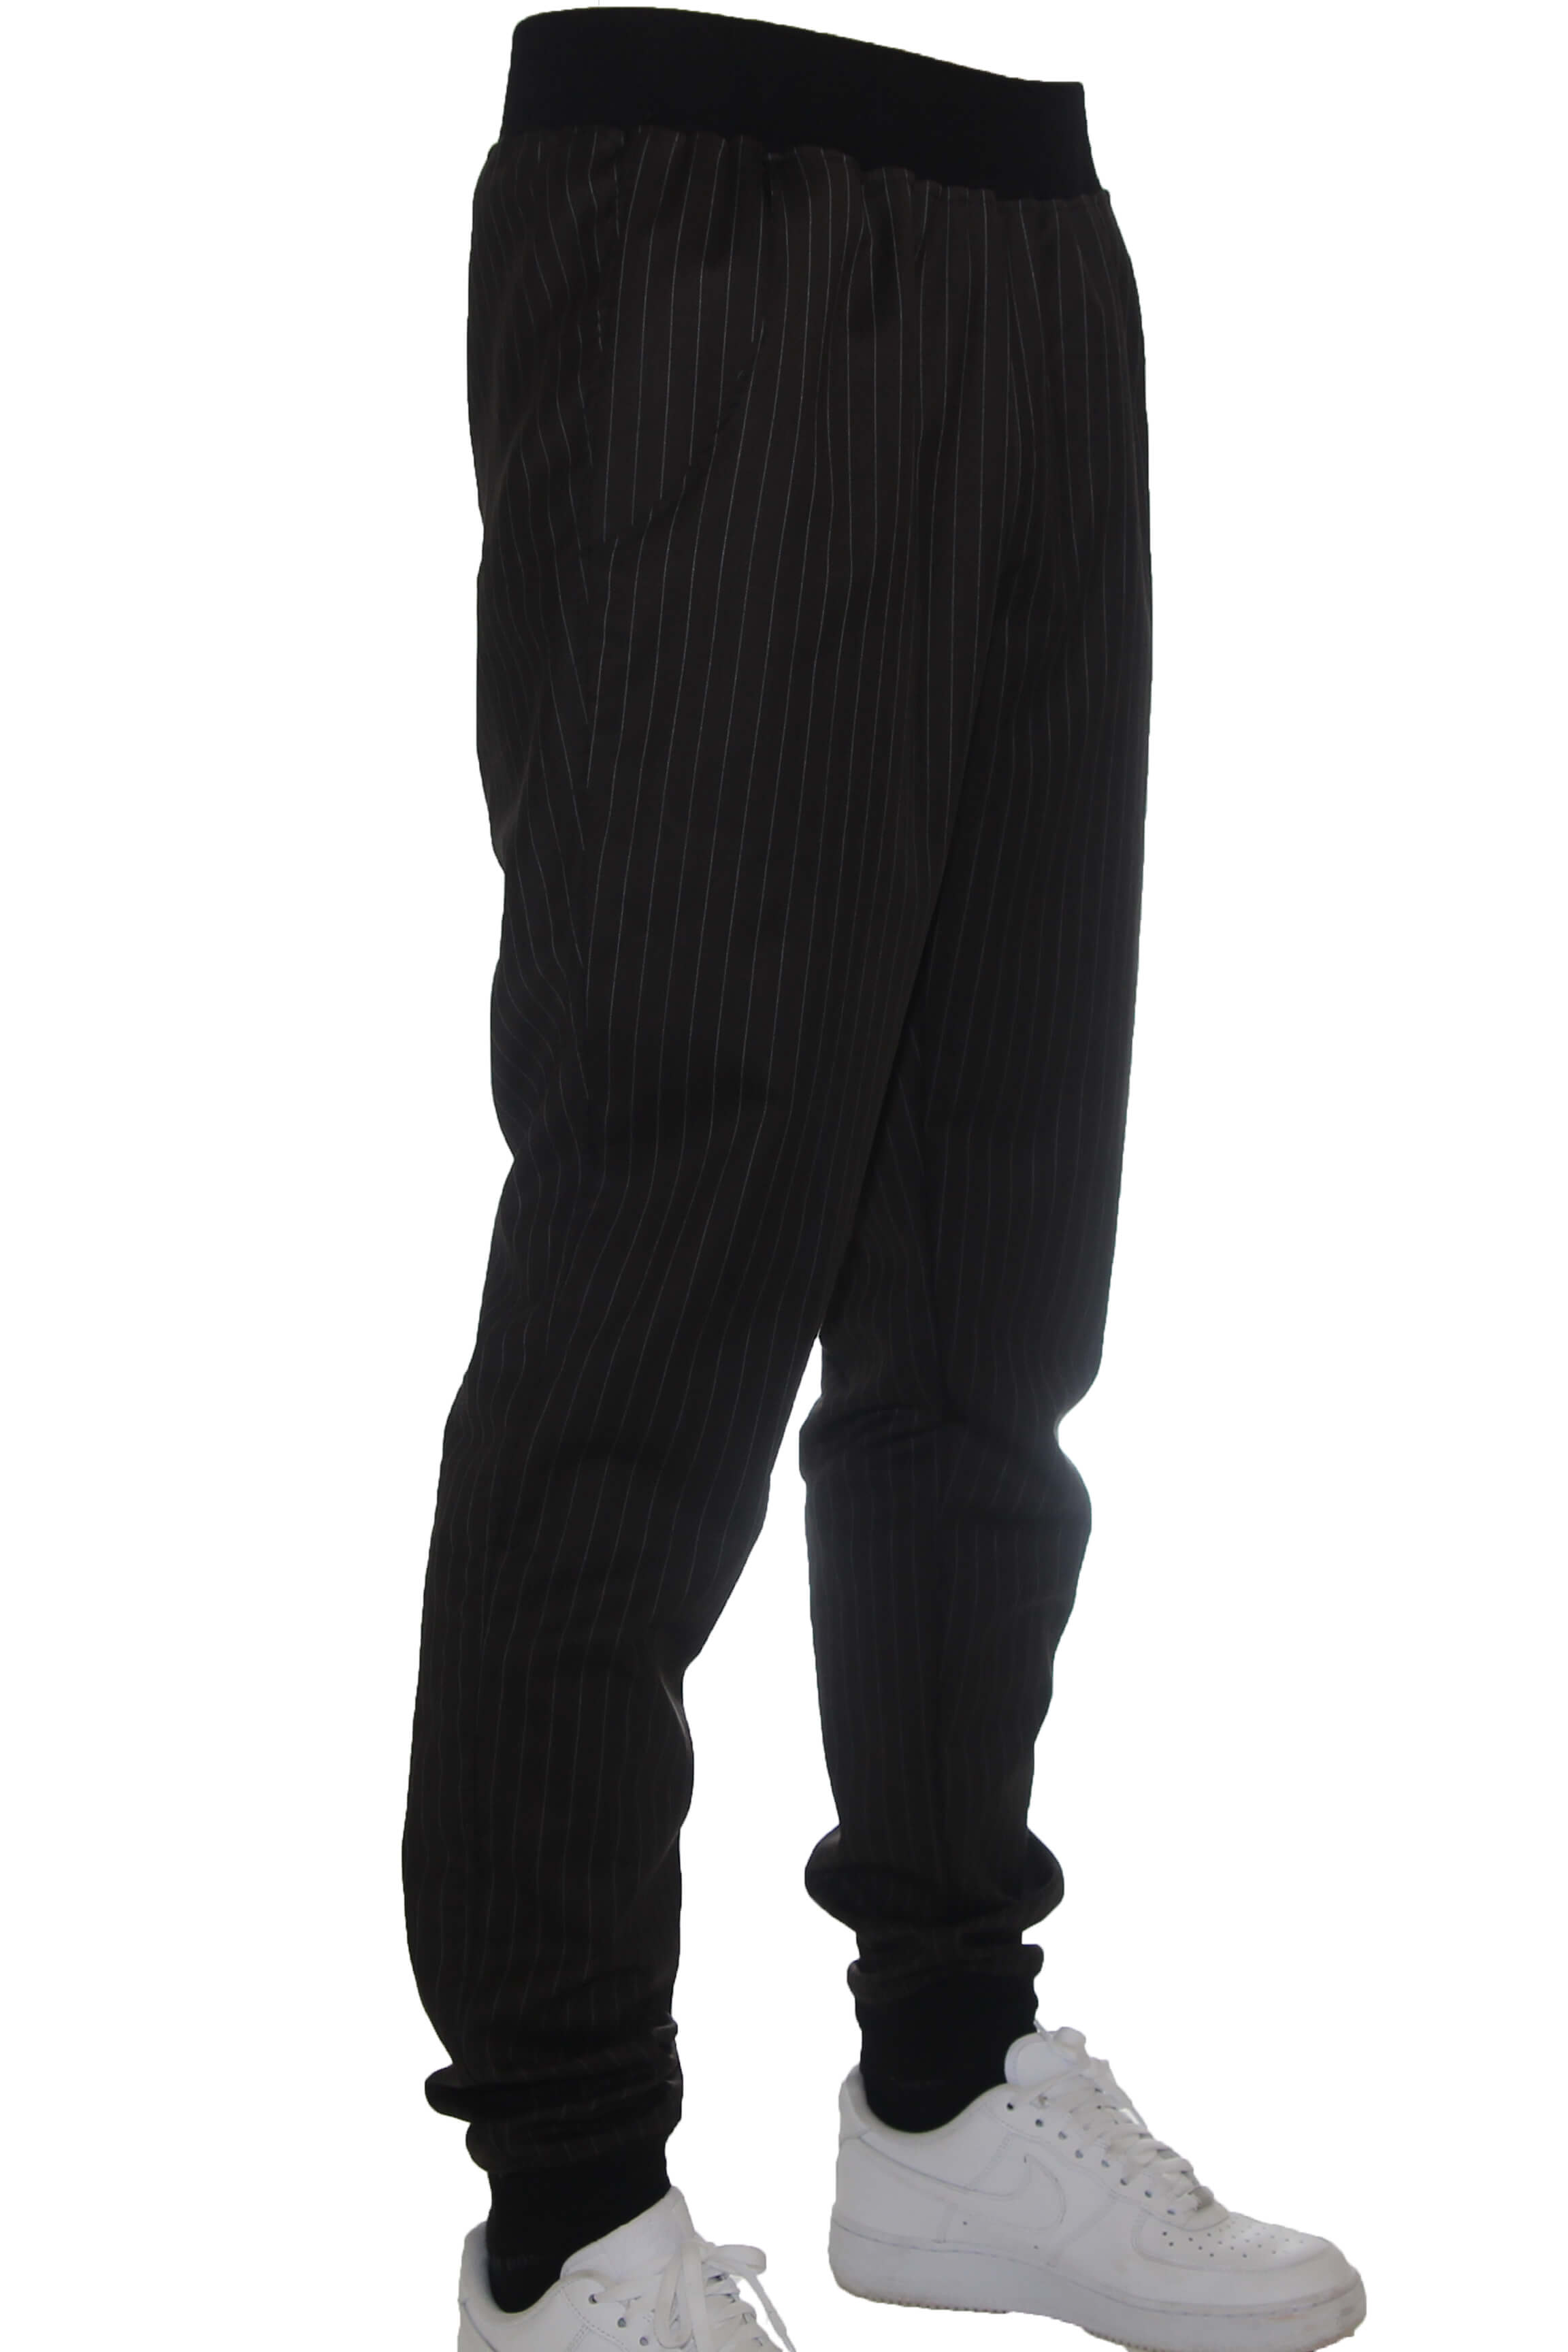 STRIPED PANTS / BLACK / LIGHT GREY